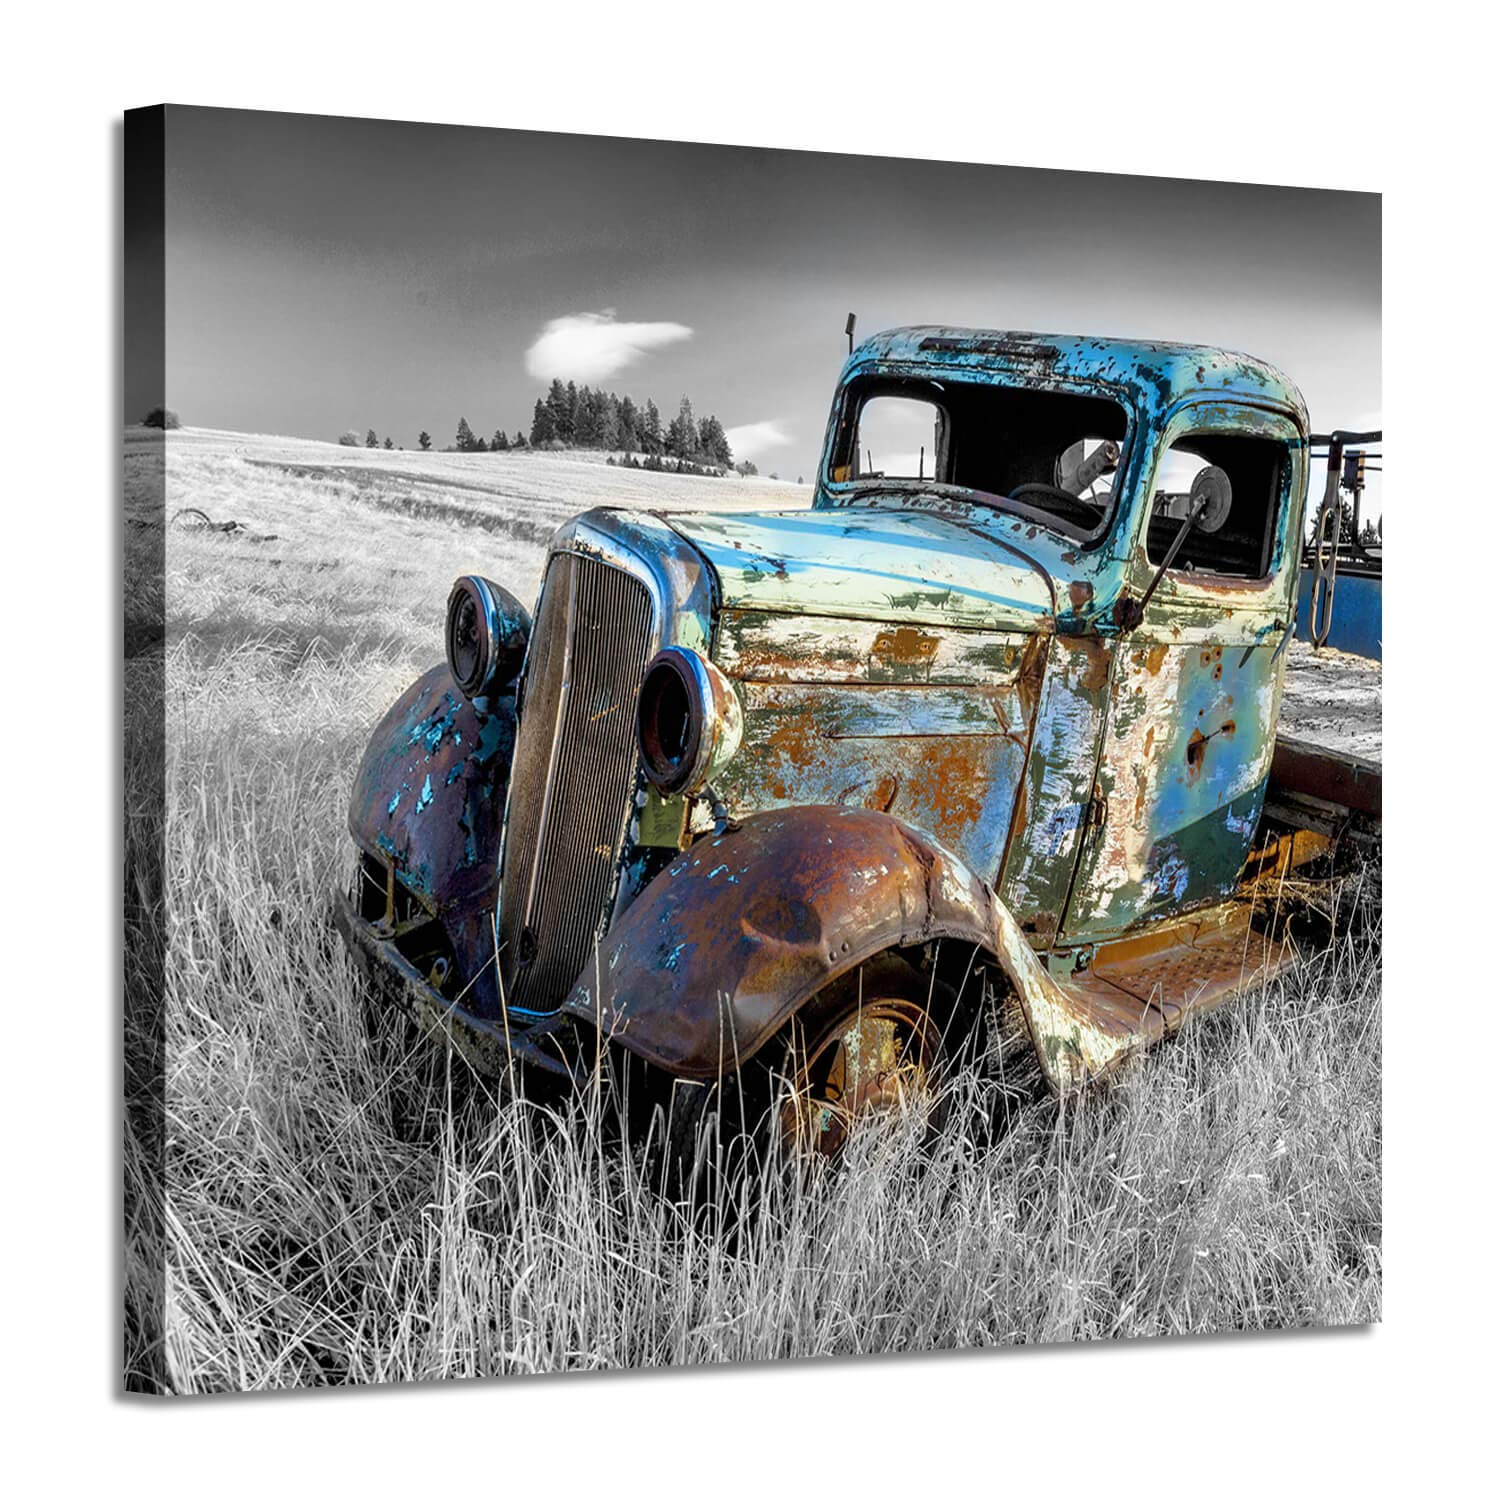 "Rusty Car Canvas Wall Art: Old Truck Pictures Paintings Print on Canvas Artwork for Bedrooms (24"" W x 18"" H,Multi-Sized)"